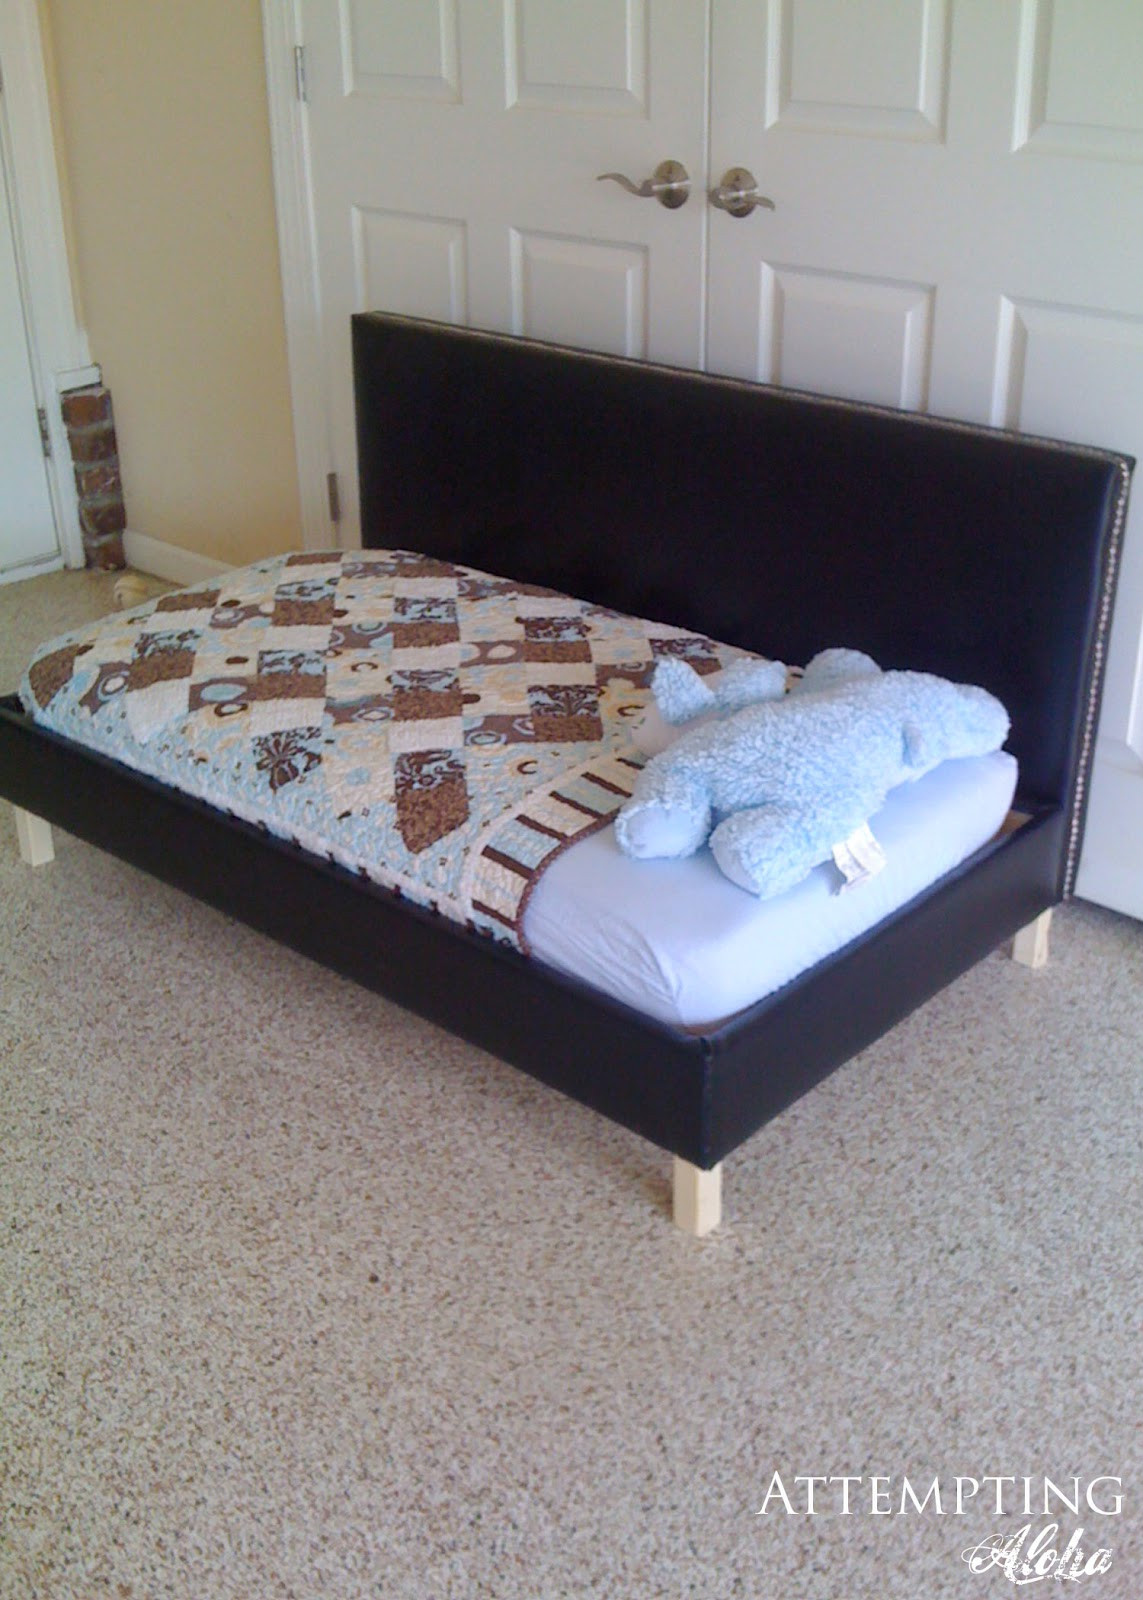 Best ideas about DIY Toddler Bed . Save or Pin Now.